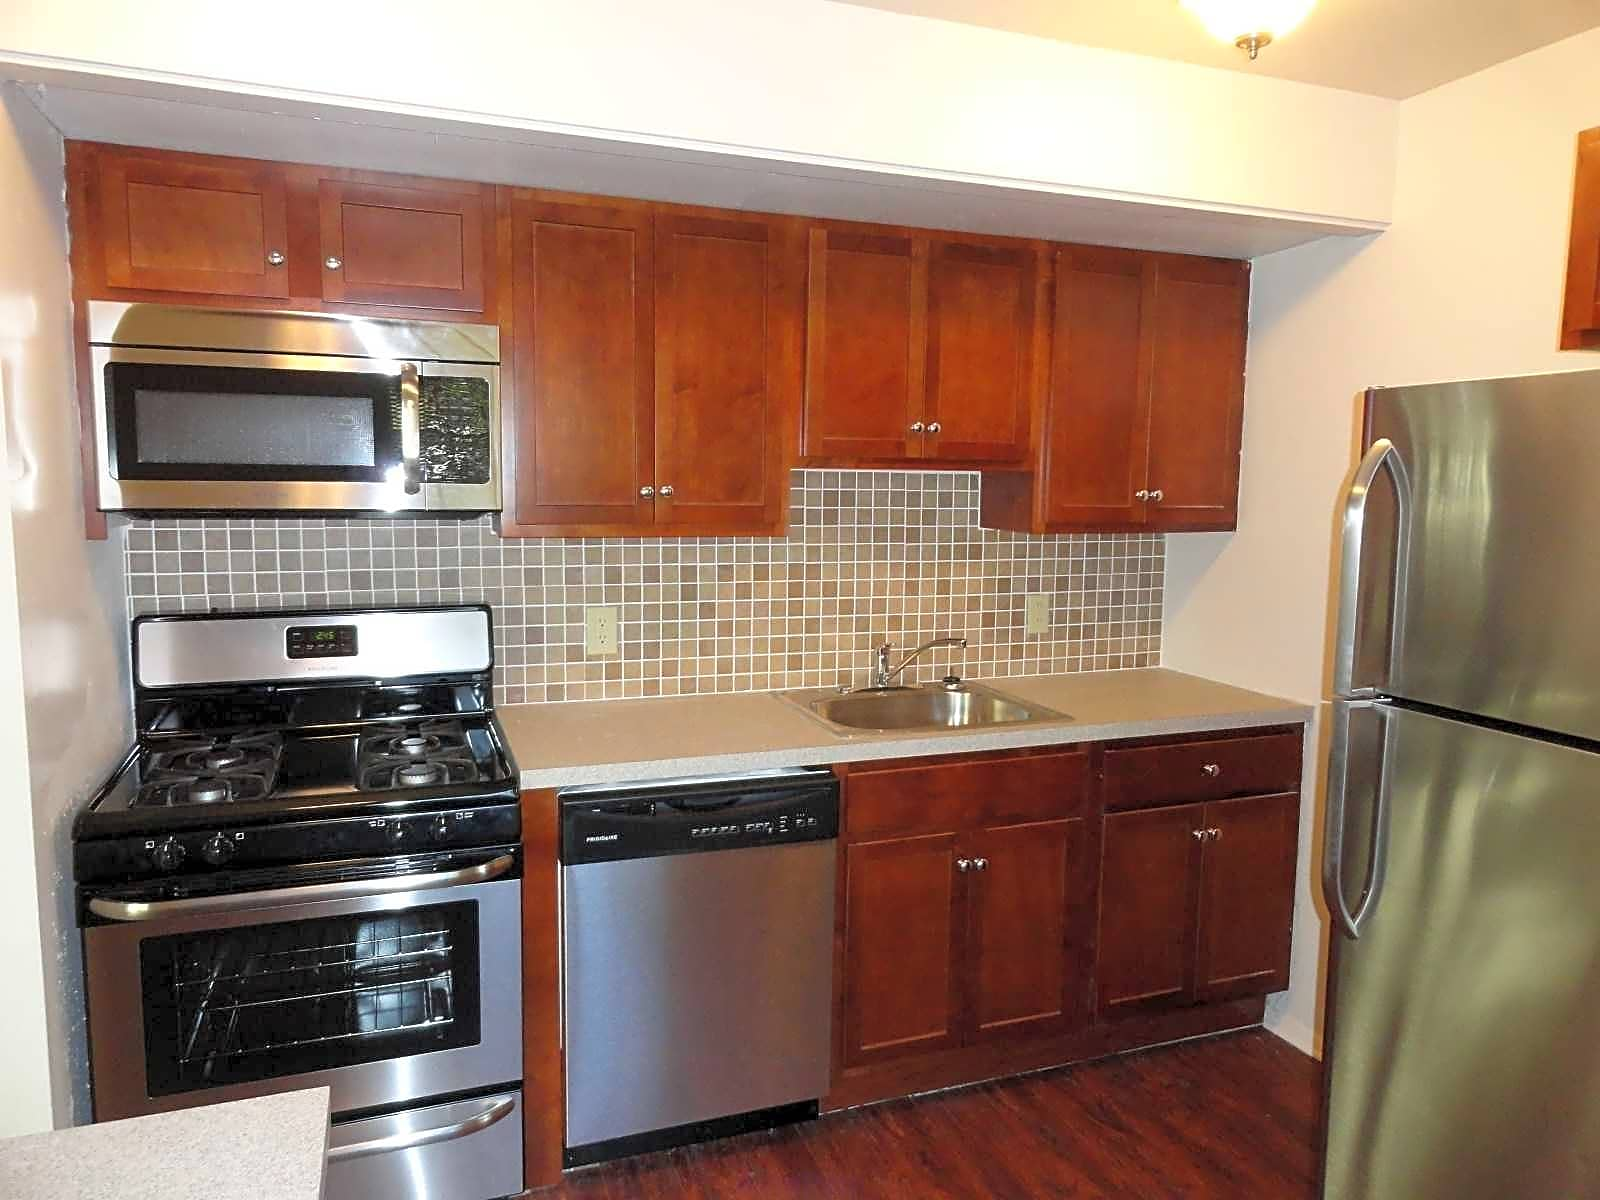 Central Park Townhomes for rent in York